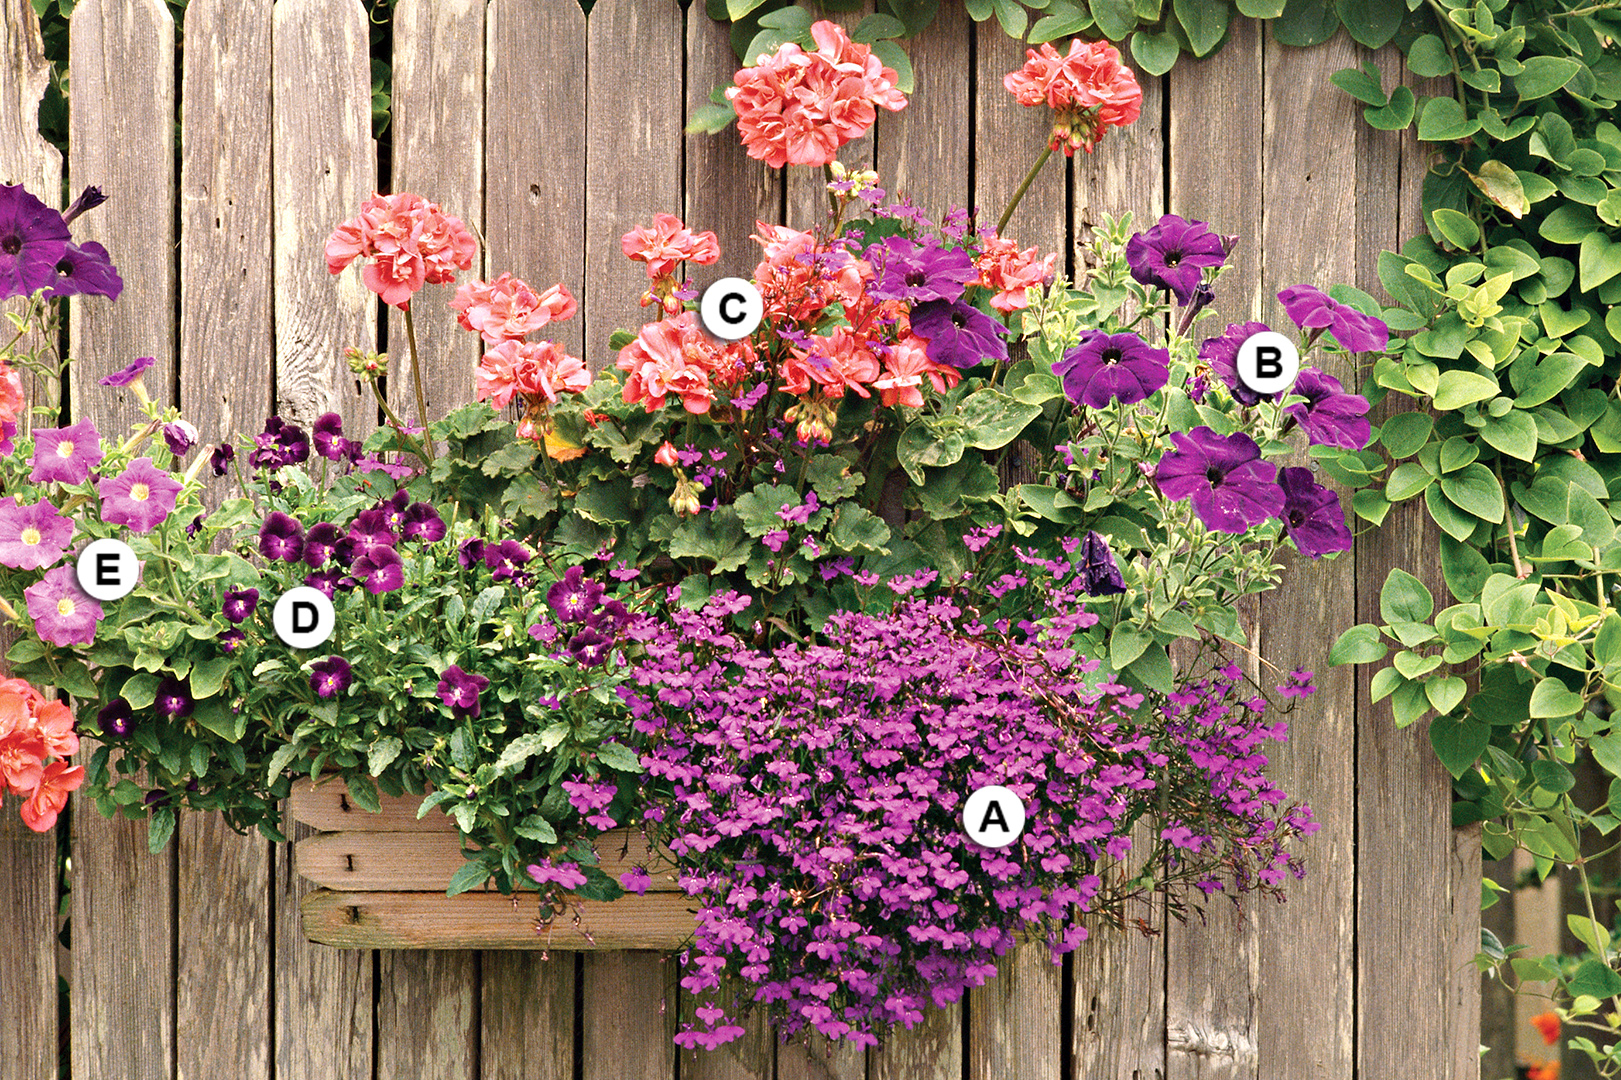 pink and purple flowers in fence hanging planter